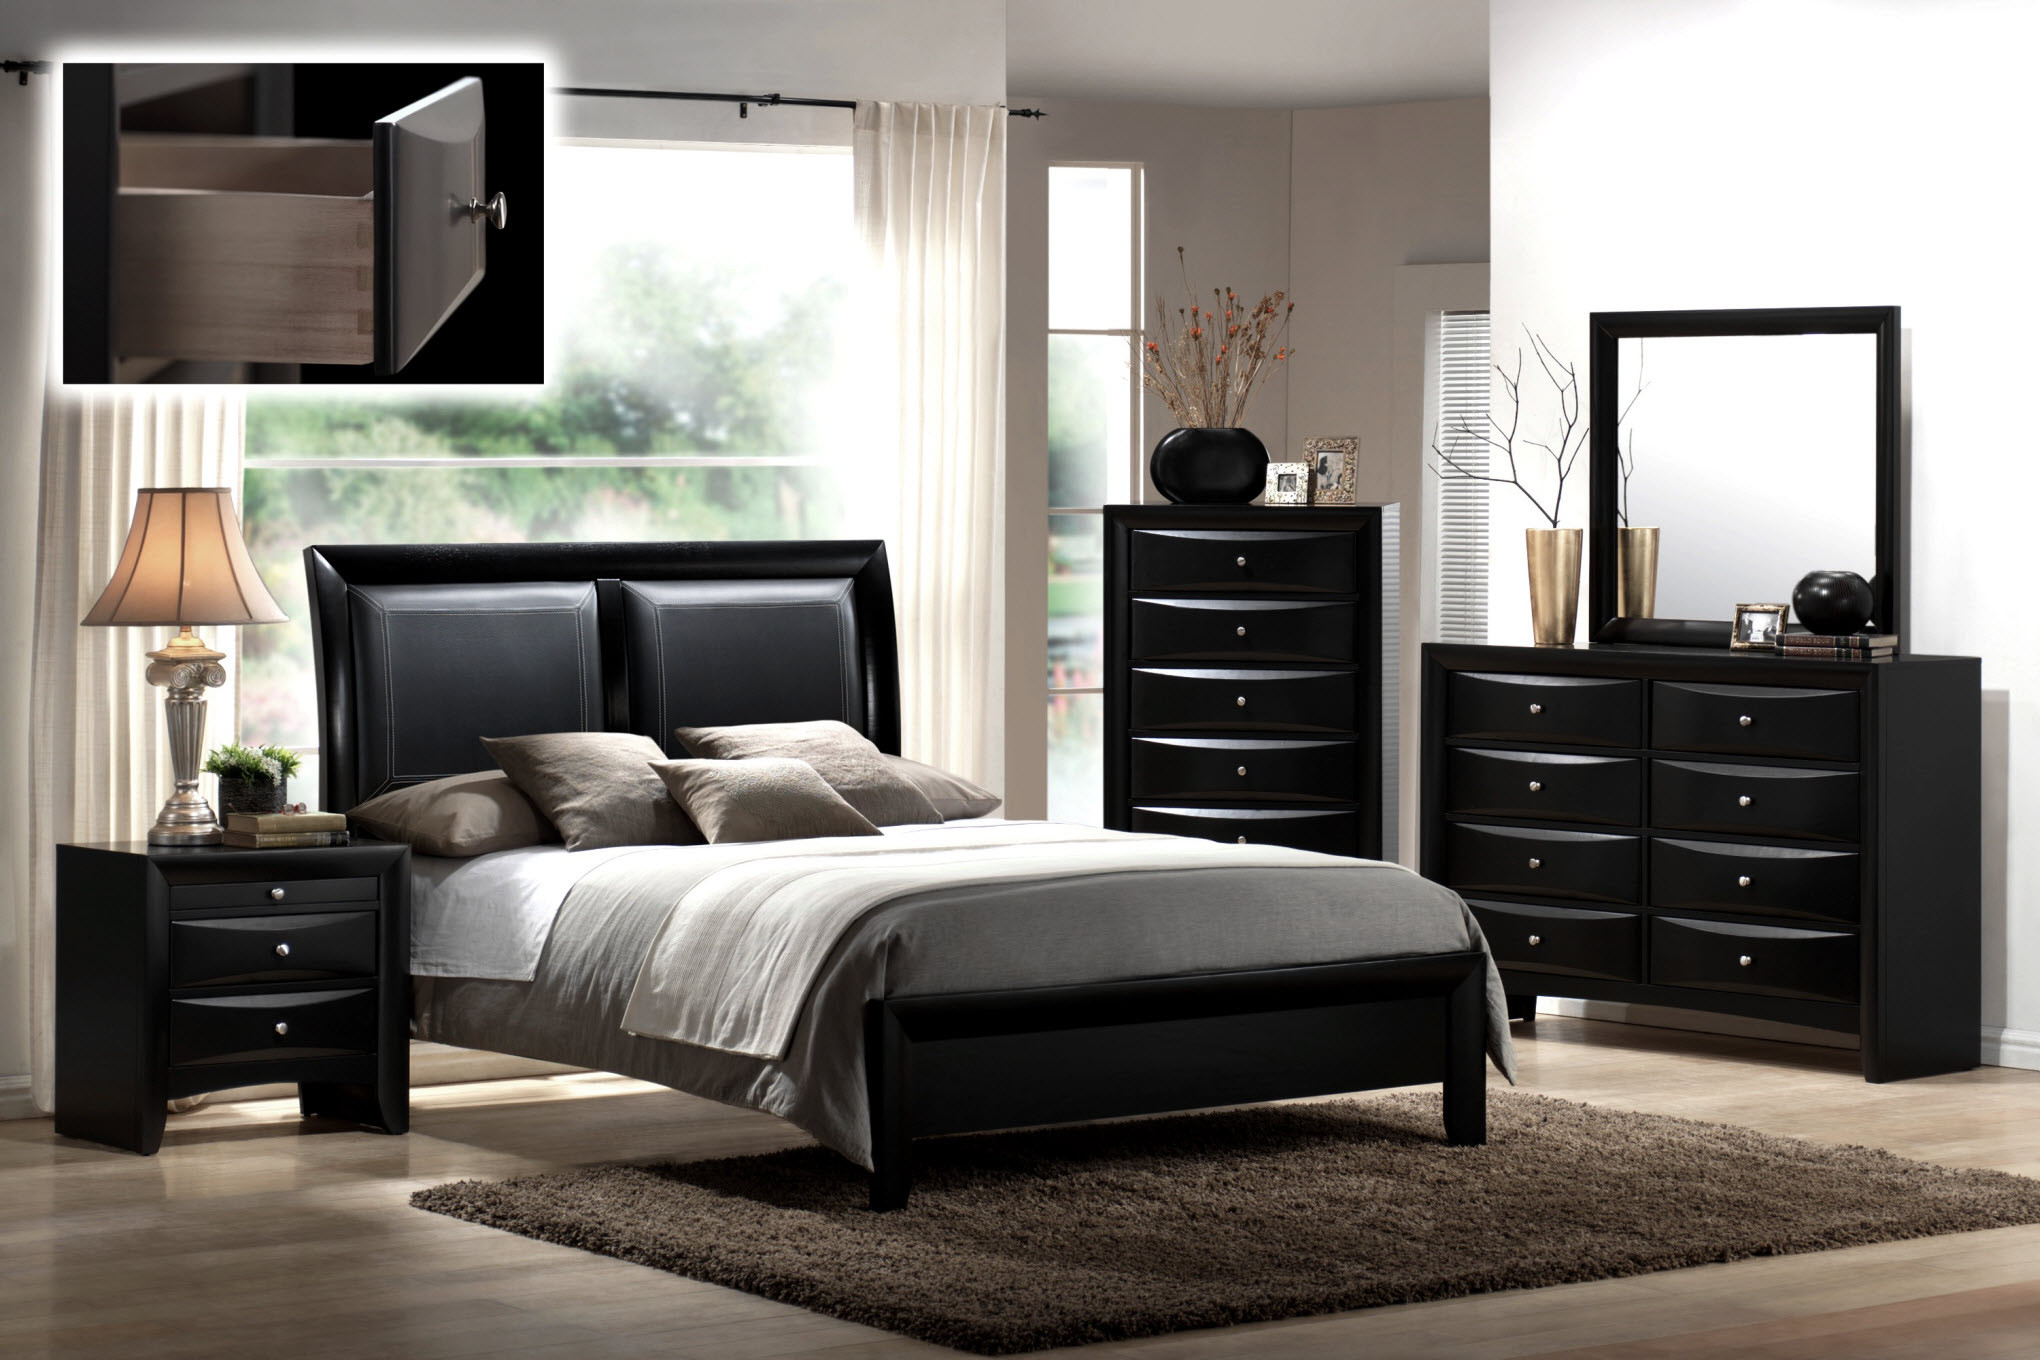 Best ideas about Black Bedroom Set . Save or Pin How to Use Black Bedroom Furniture in Your Interior Now.